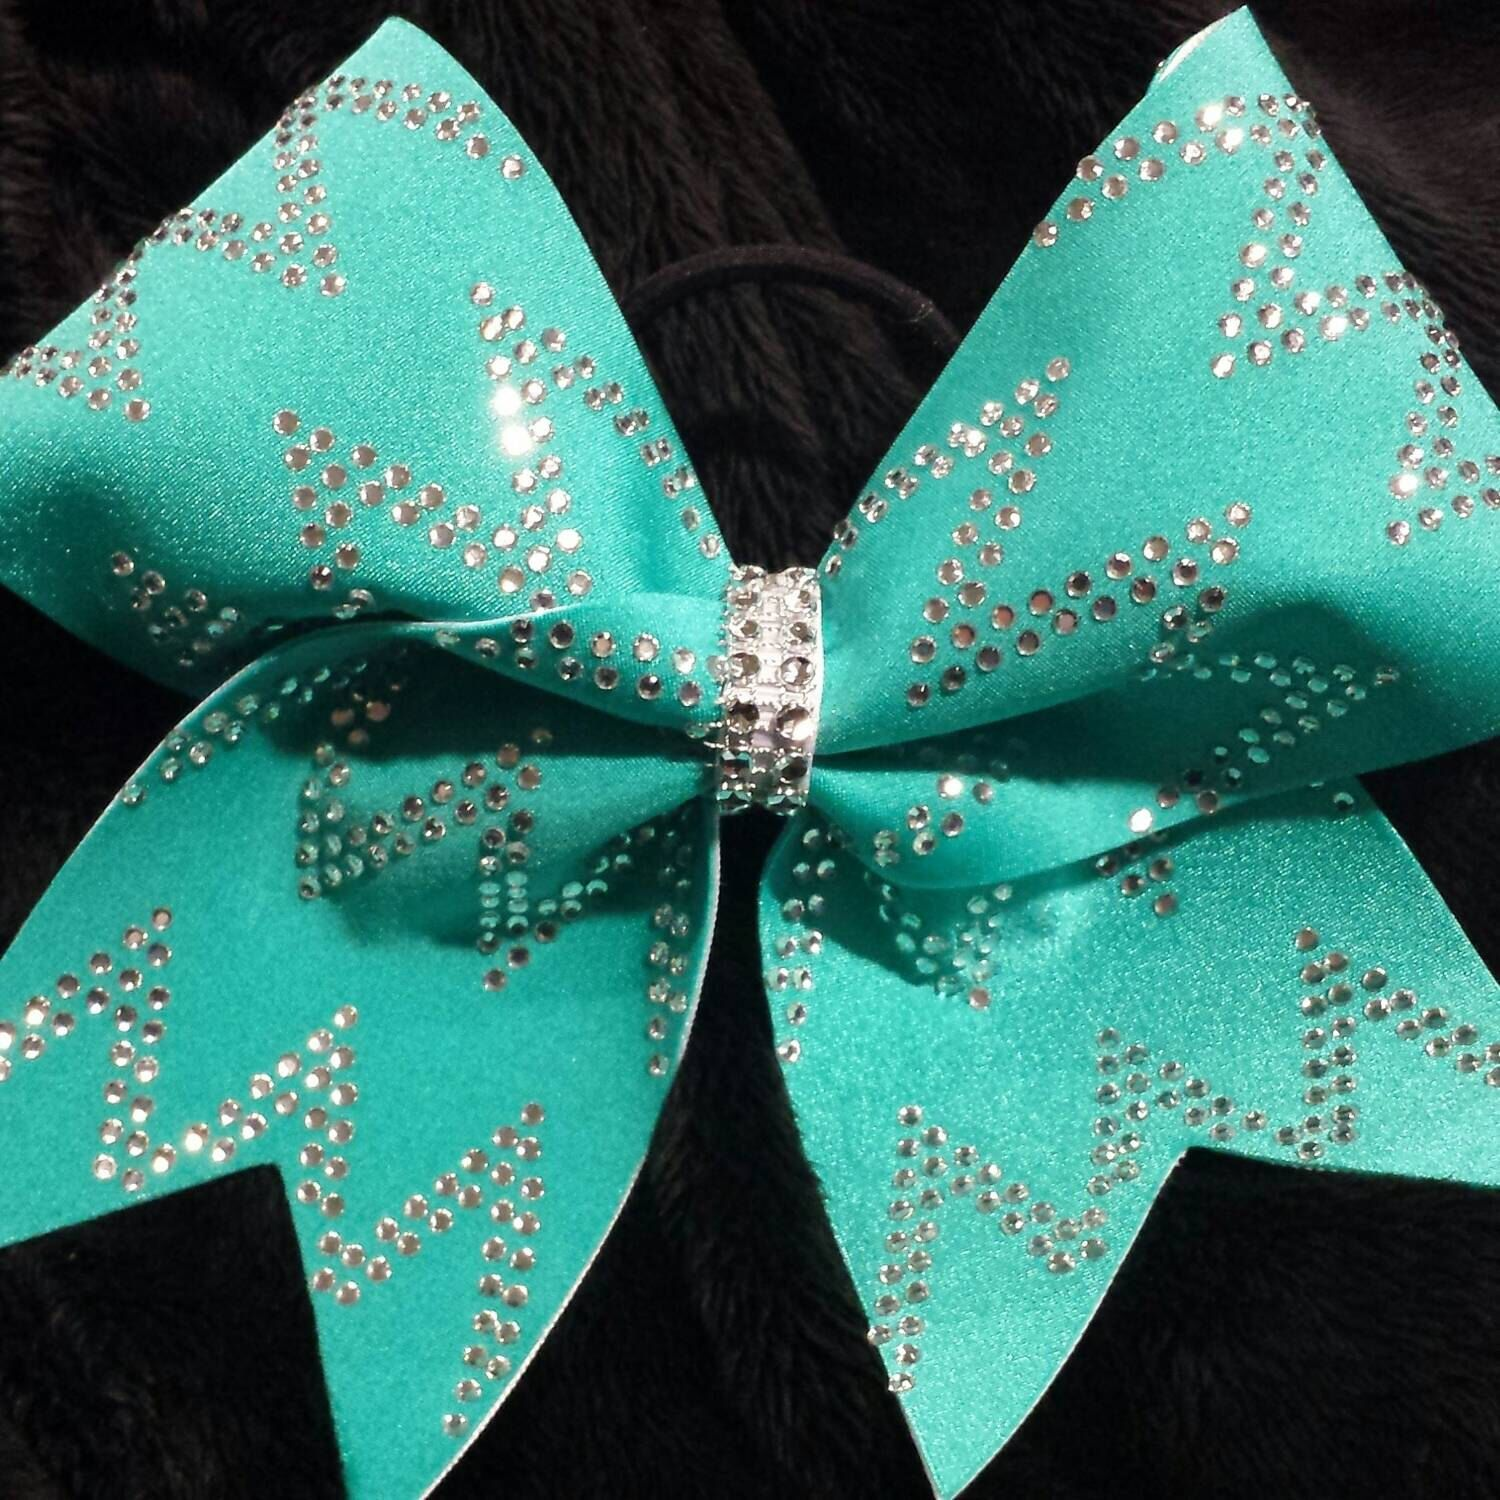 Chevron Bling Cheer Bow by BowtabulousCheerBows on Etsy https://www.etsy.com/listing/214618399/chevron-bling-cheer-bow